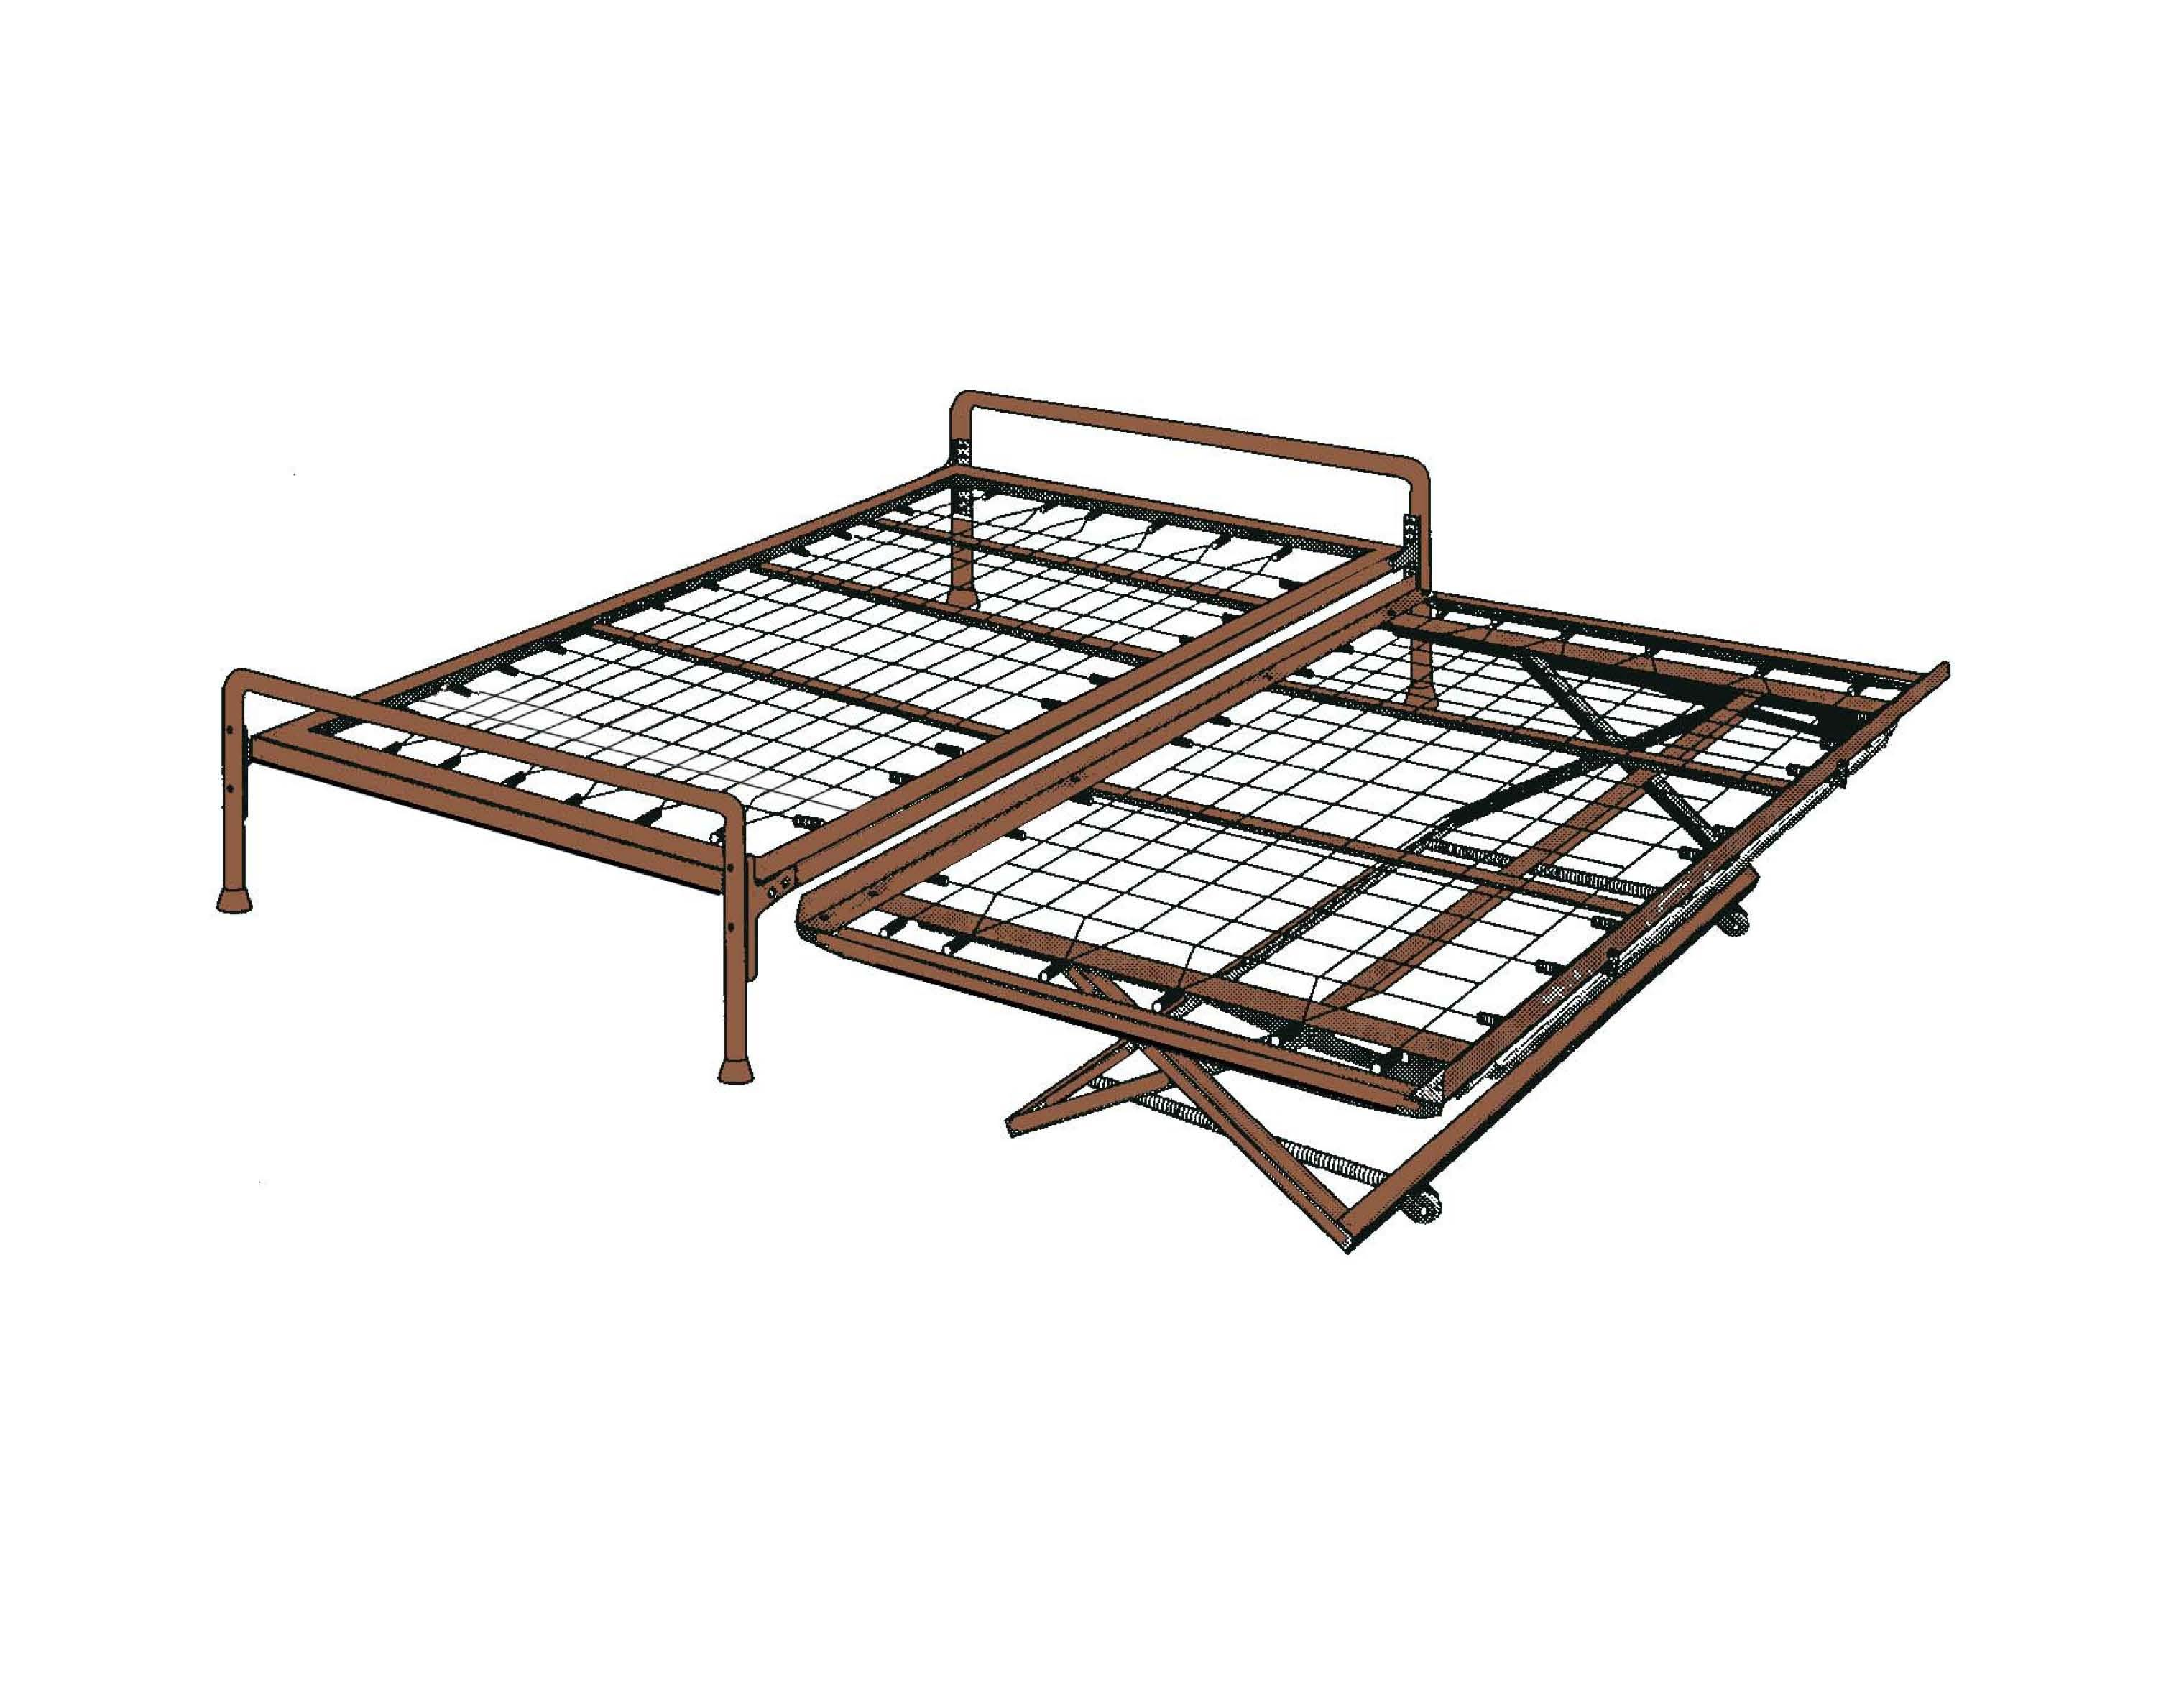 Trundle bed frame - Hirise Day Bed Daybed Frame With Headboard Pop Up Trundle Ebay